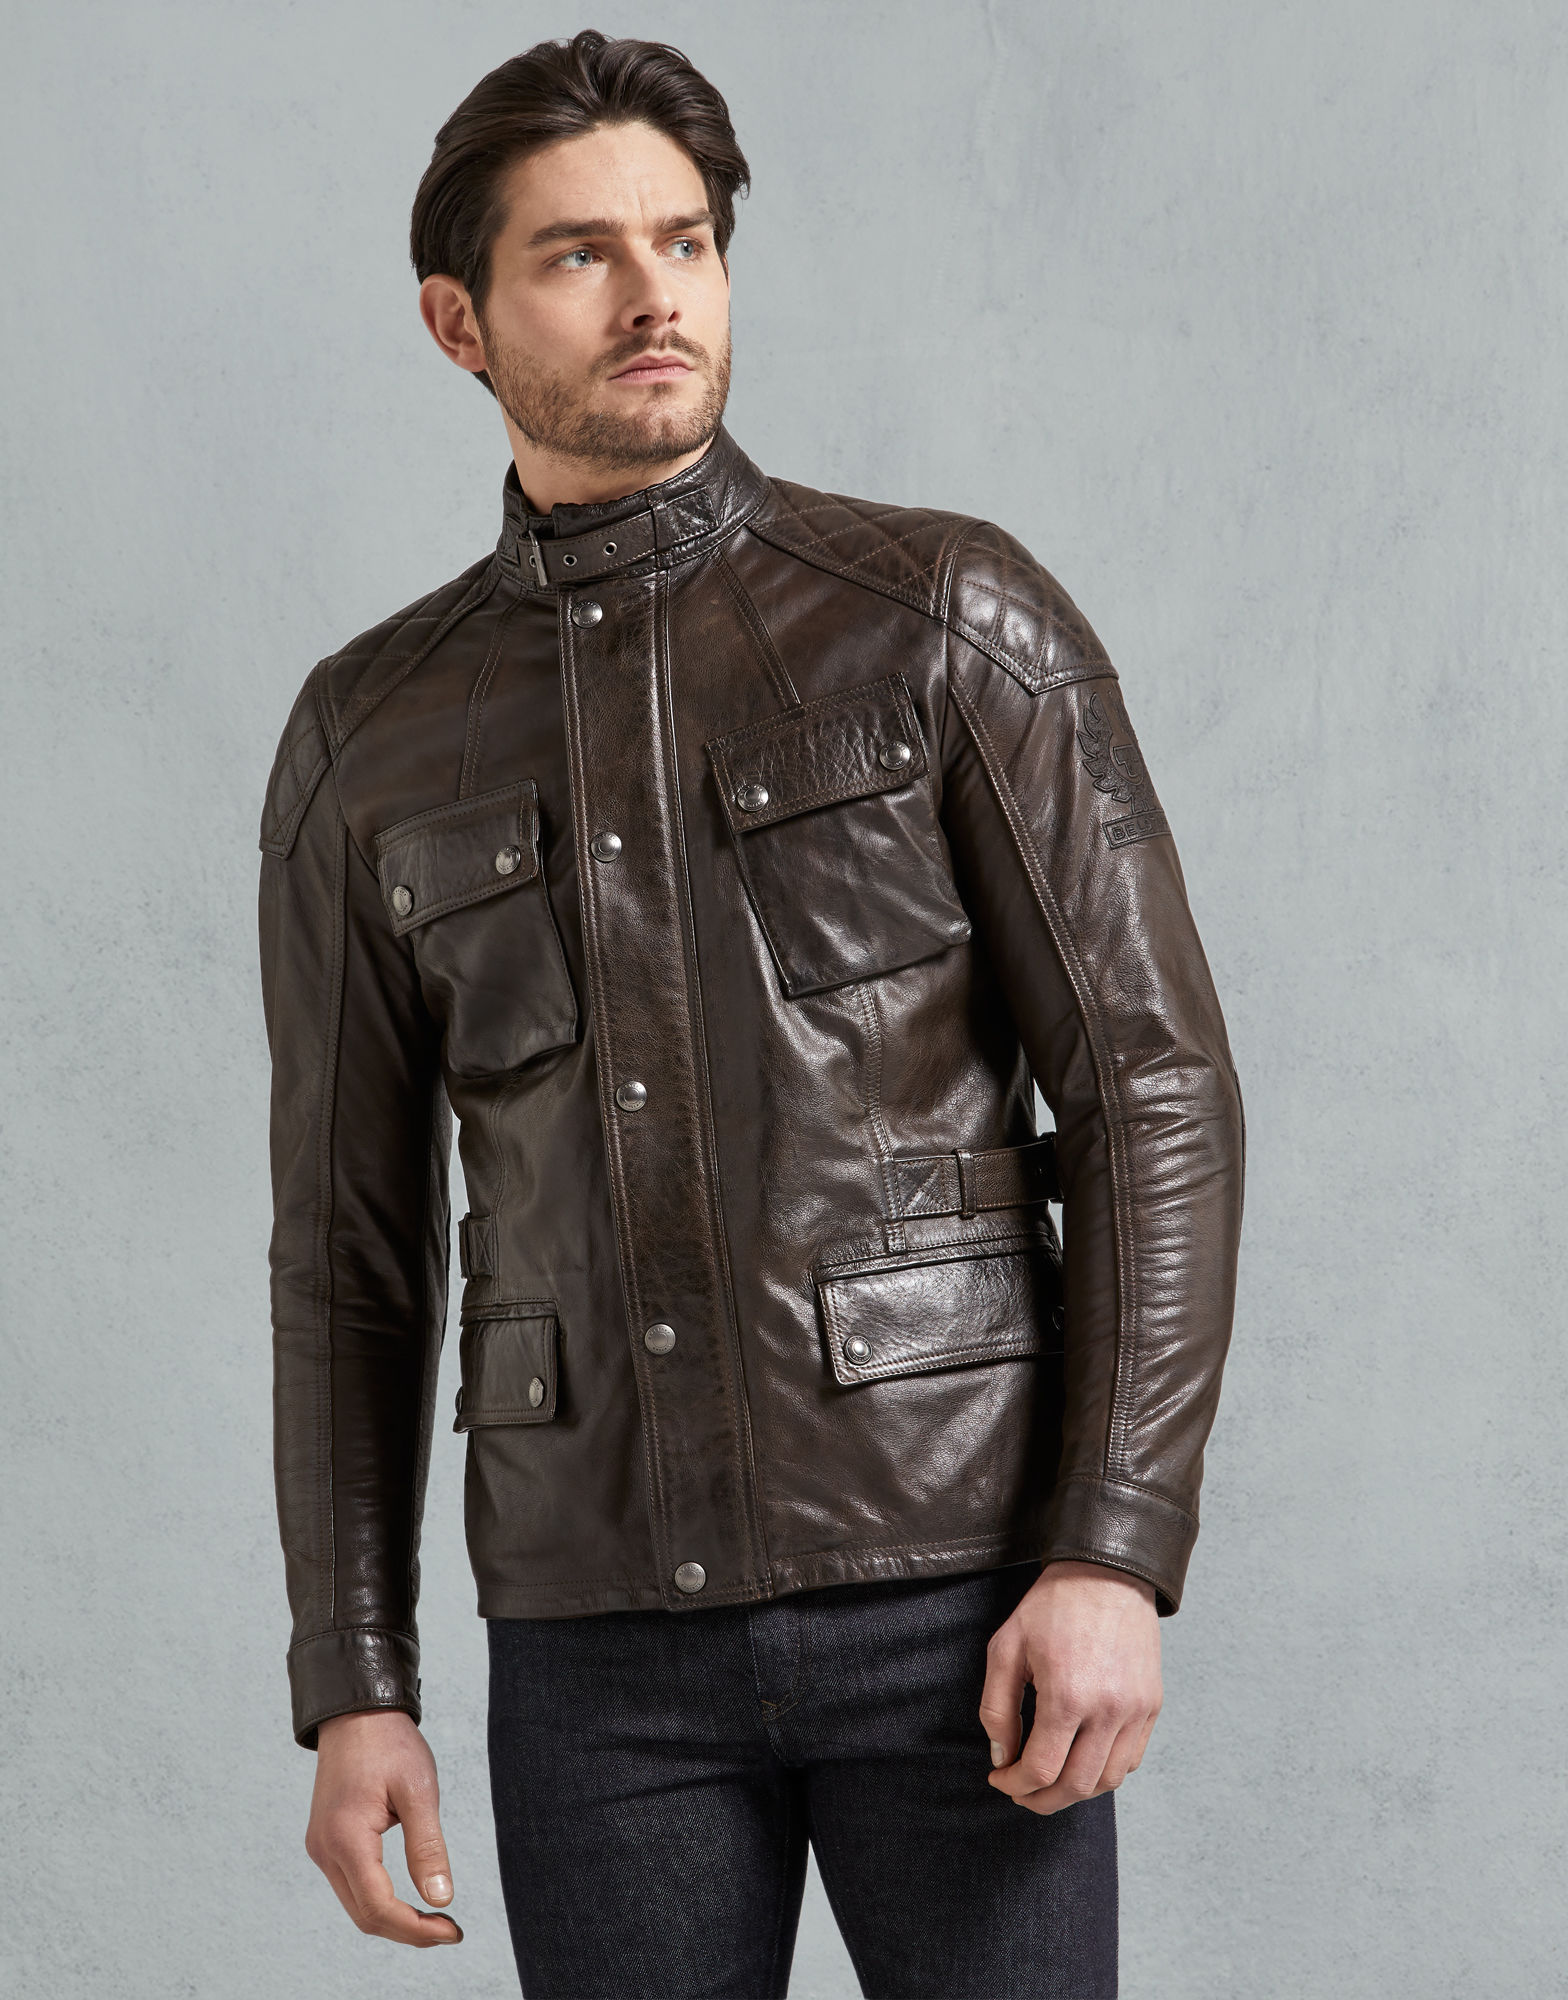 Turner Leather Jacket - Crafted from heritage, hand-waxed leather with Belstaff's exclusive artisan finishing, the Turner, in black brown, is a Pure Motorcycle icon. As well as looking the part, the Turner comes with CE-compliant D30 protectors on the shoulders and elbows.A classic four-pocket style, with press-stud closures and signature tilted map pocket, the Turner also features adjustable straps at the collar and waist for a comfortable, custom fit. Finally, the corduroy lining on the collar and cuffs adds a touch of luxurious comfort where it's needed most.Style# 41051009L81N0337-Black brown